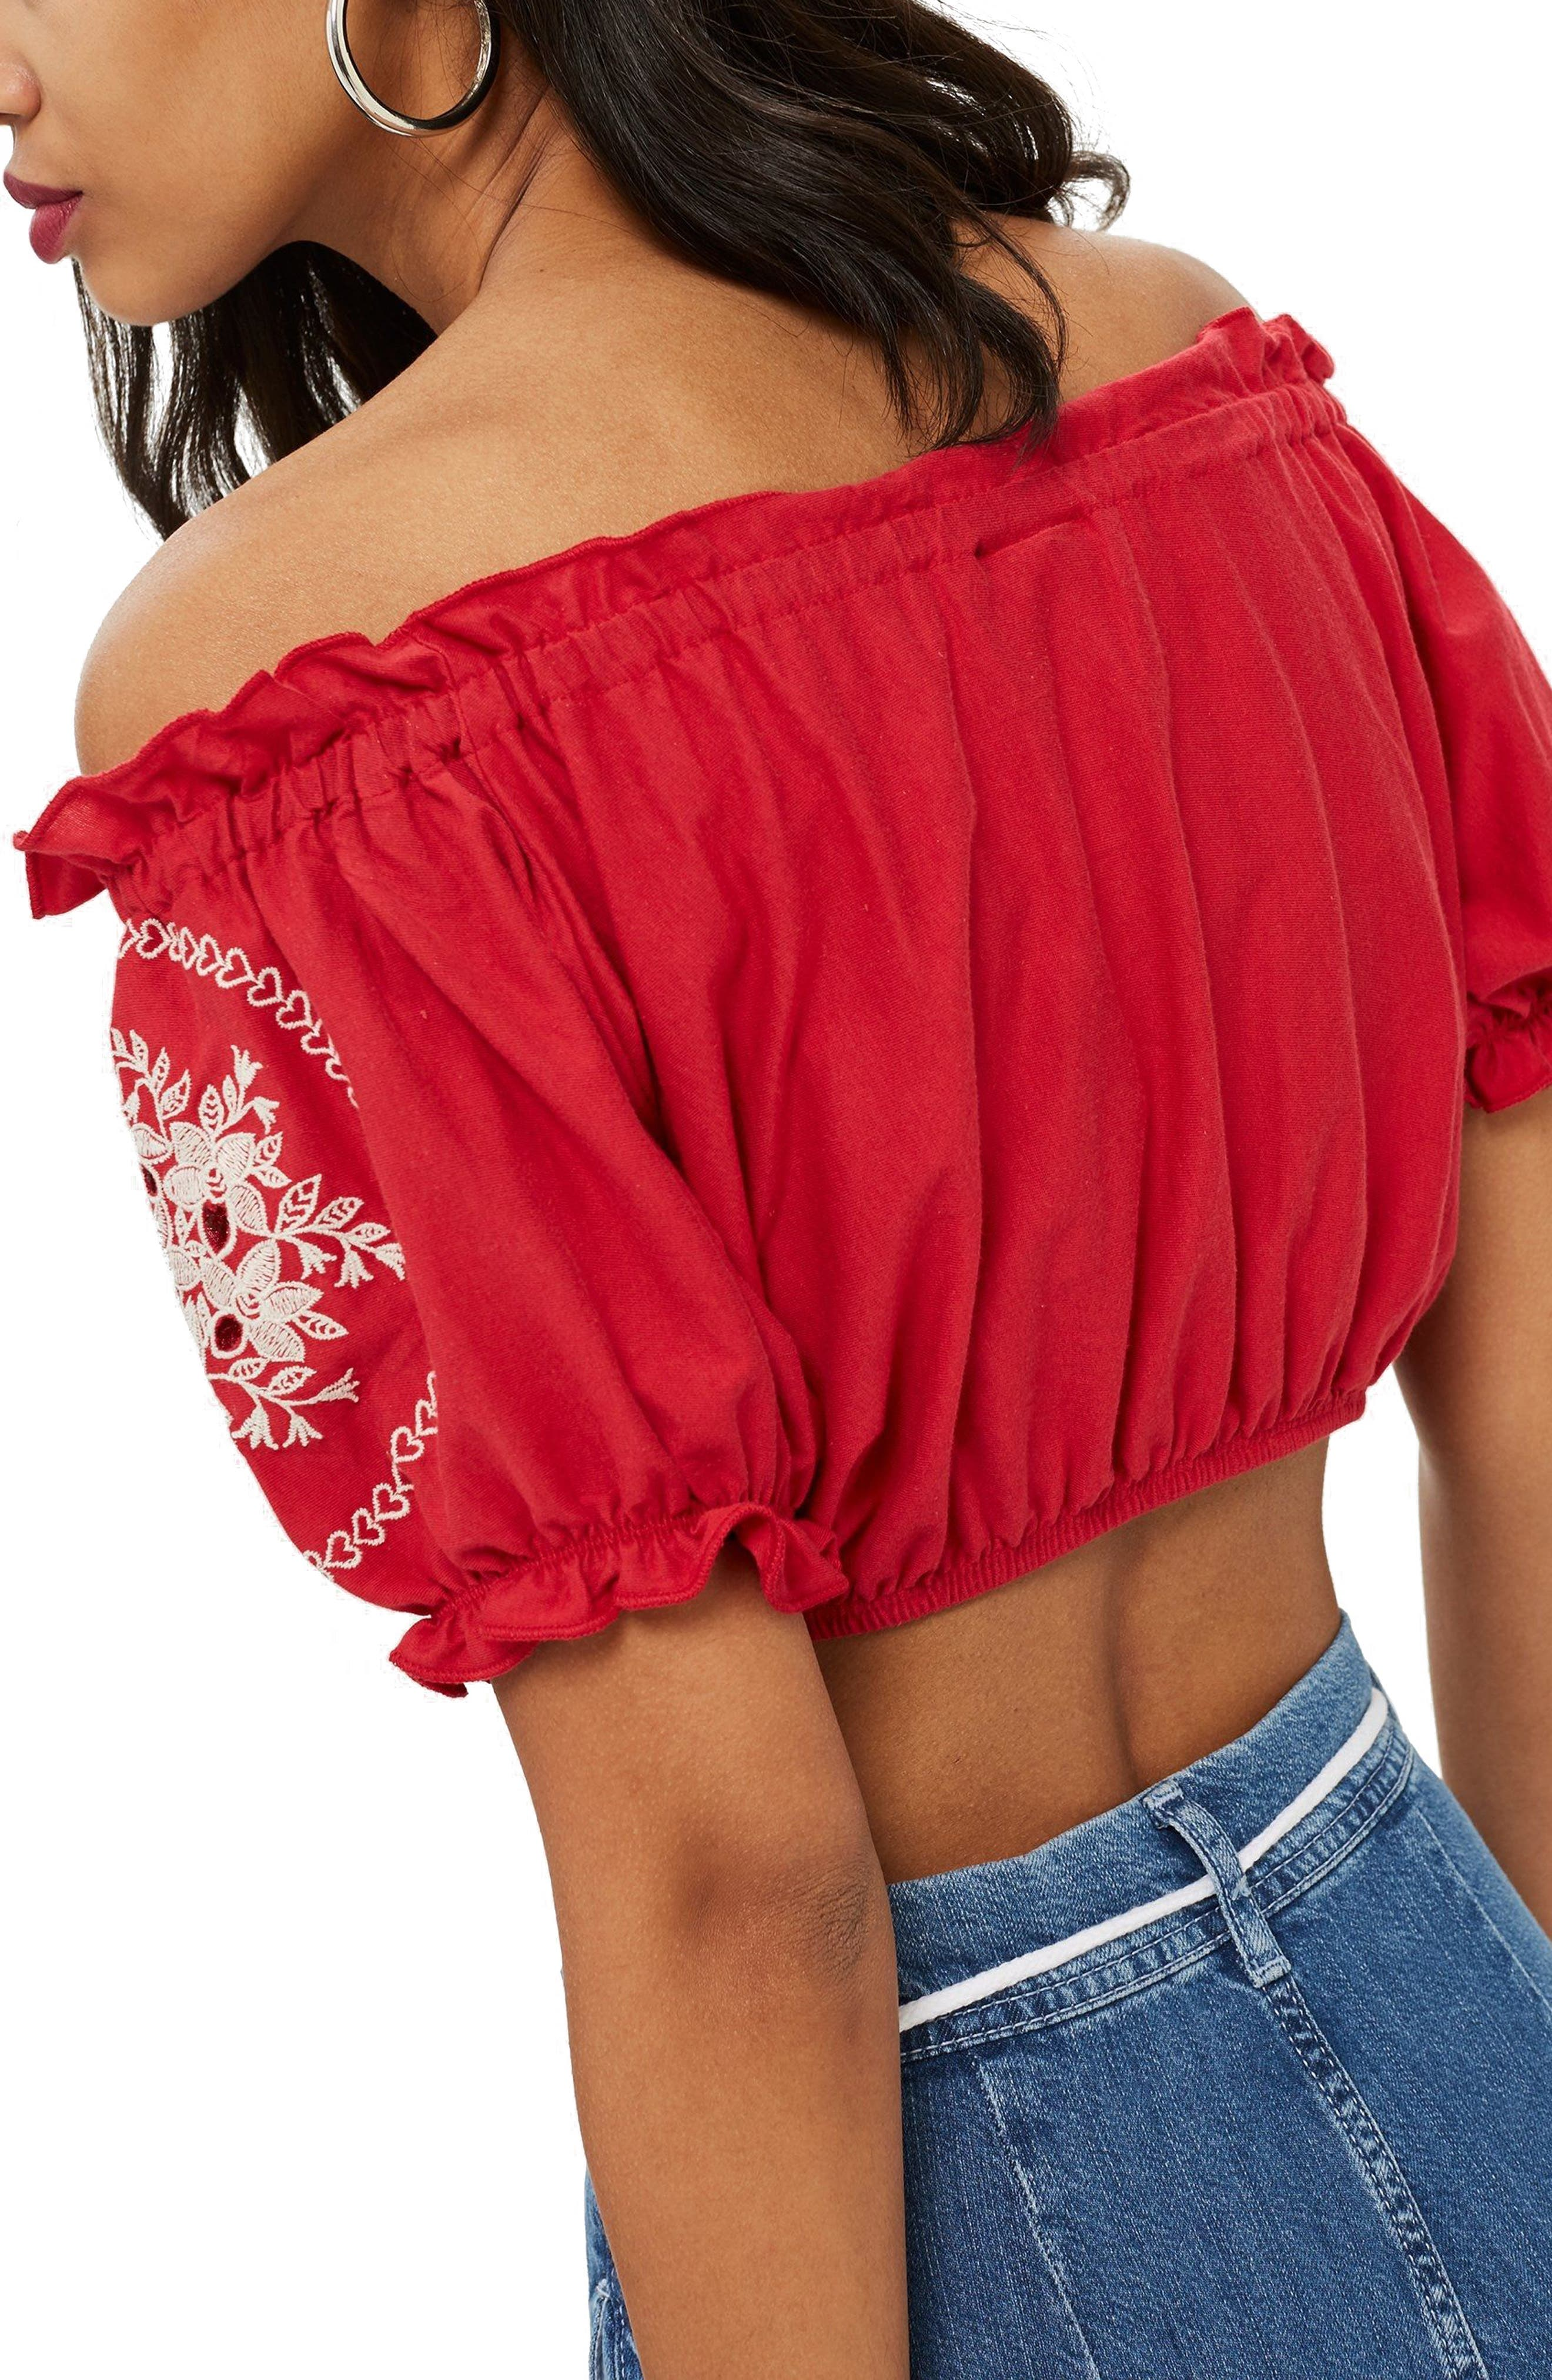 Gypsy Embroidered Crop Top,                             Alternate thumbnail 2, color,                             Red Multi